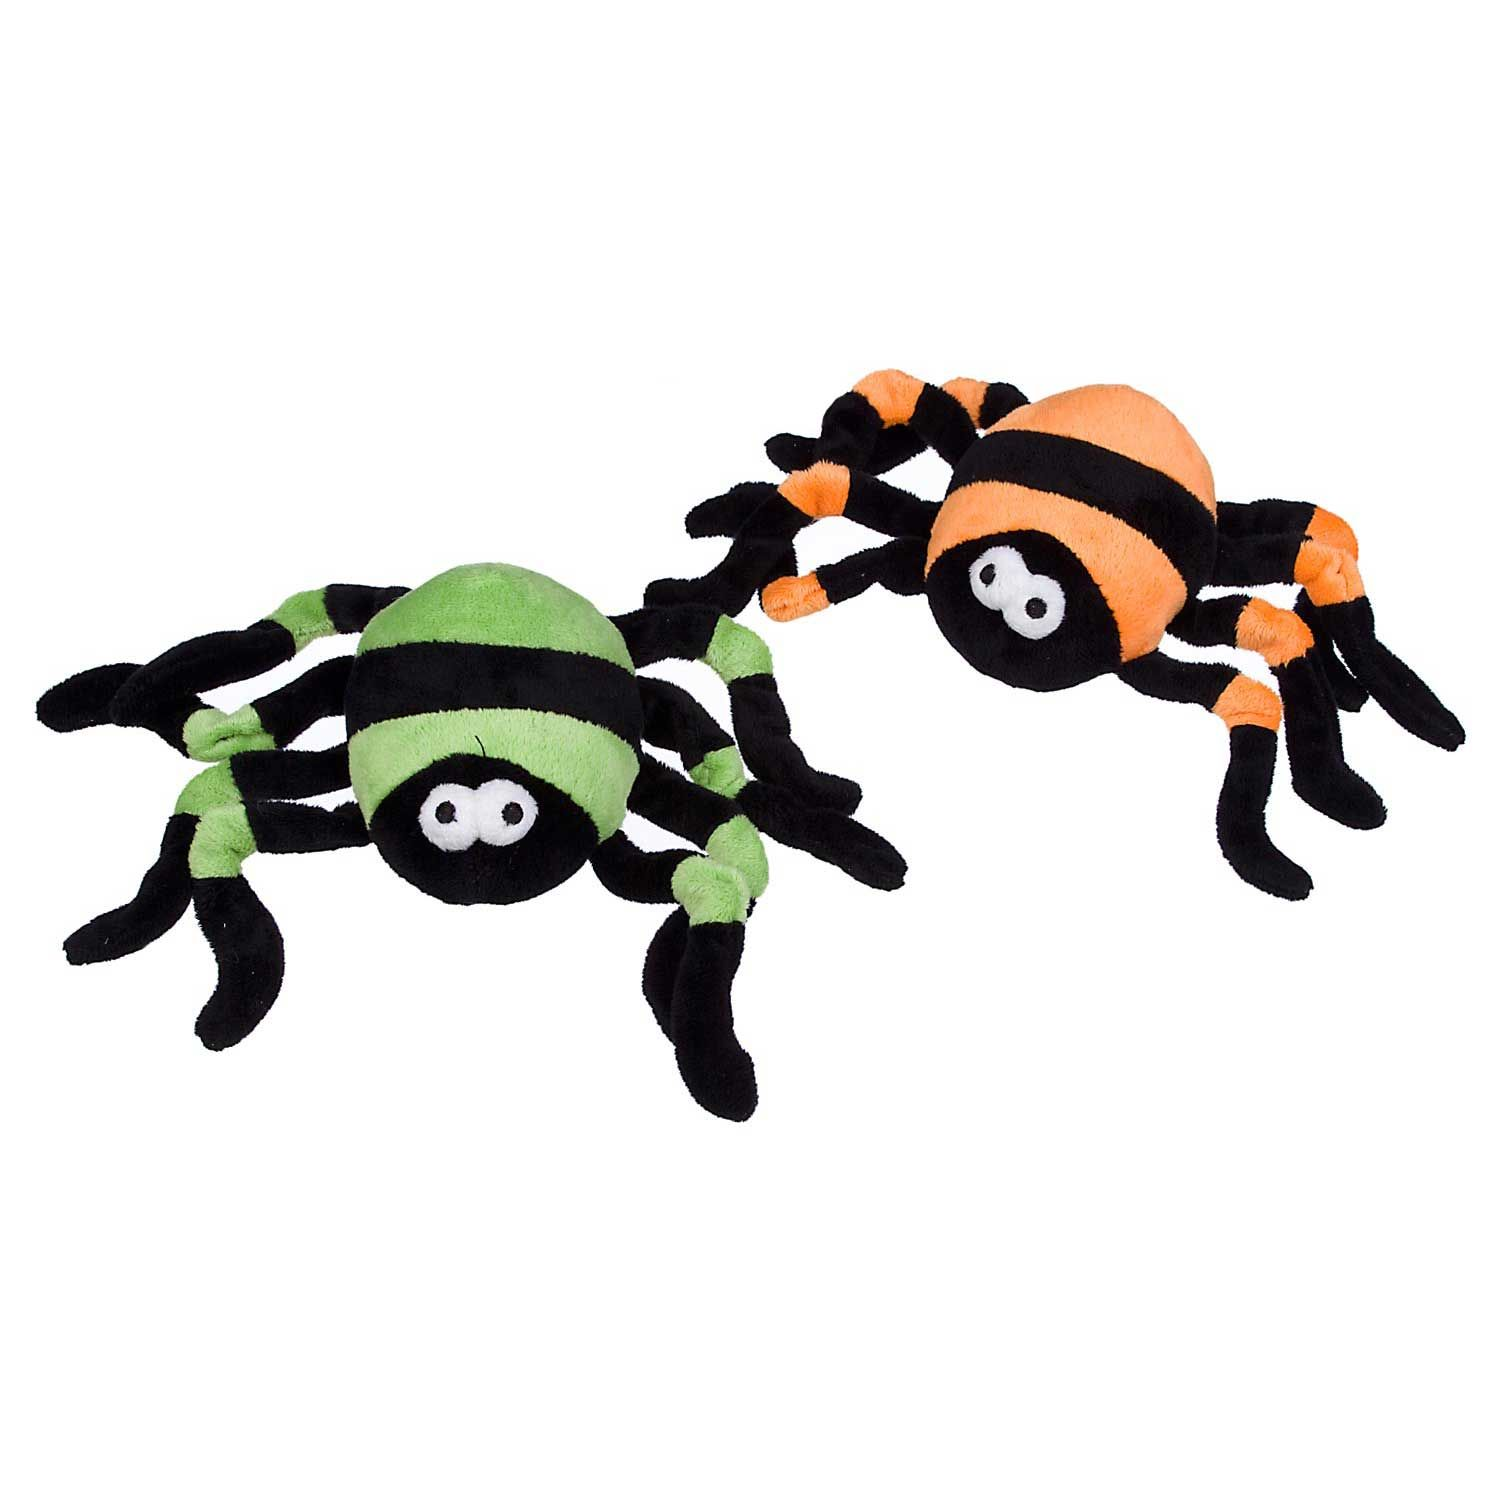 Petco Halloween Striped Spider Plush Dog Toy Love These They